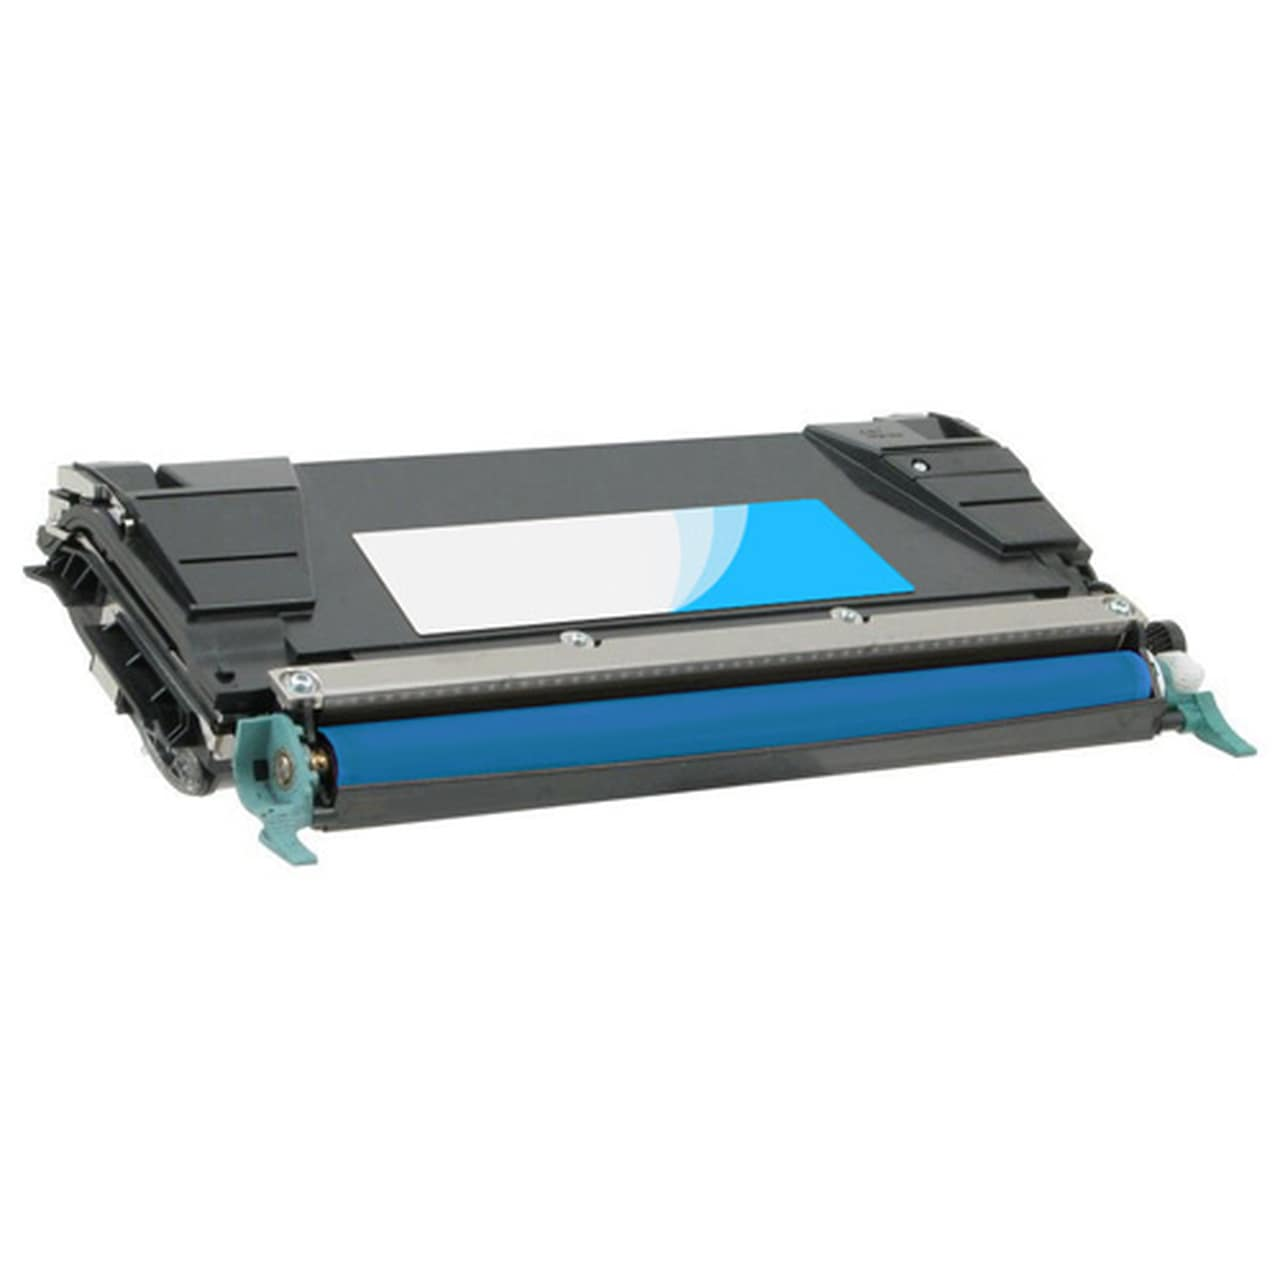 C5220CS Toner Cartridge - Lexmark Remanufactured  (Cyan)